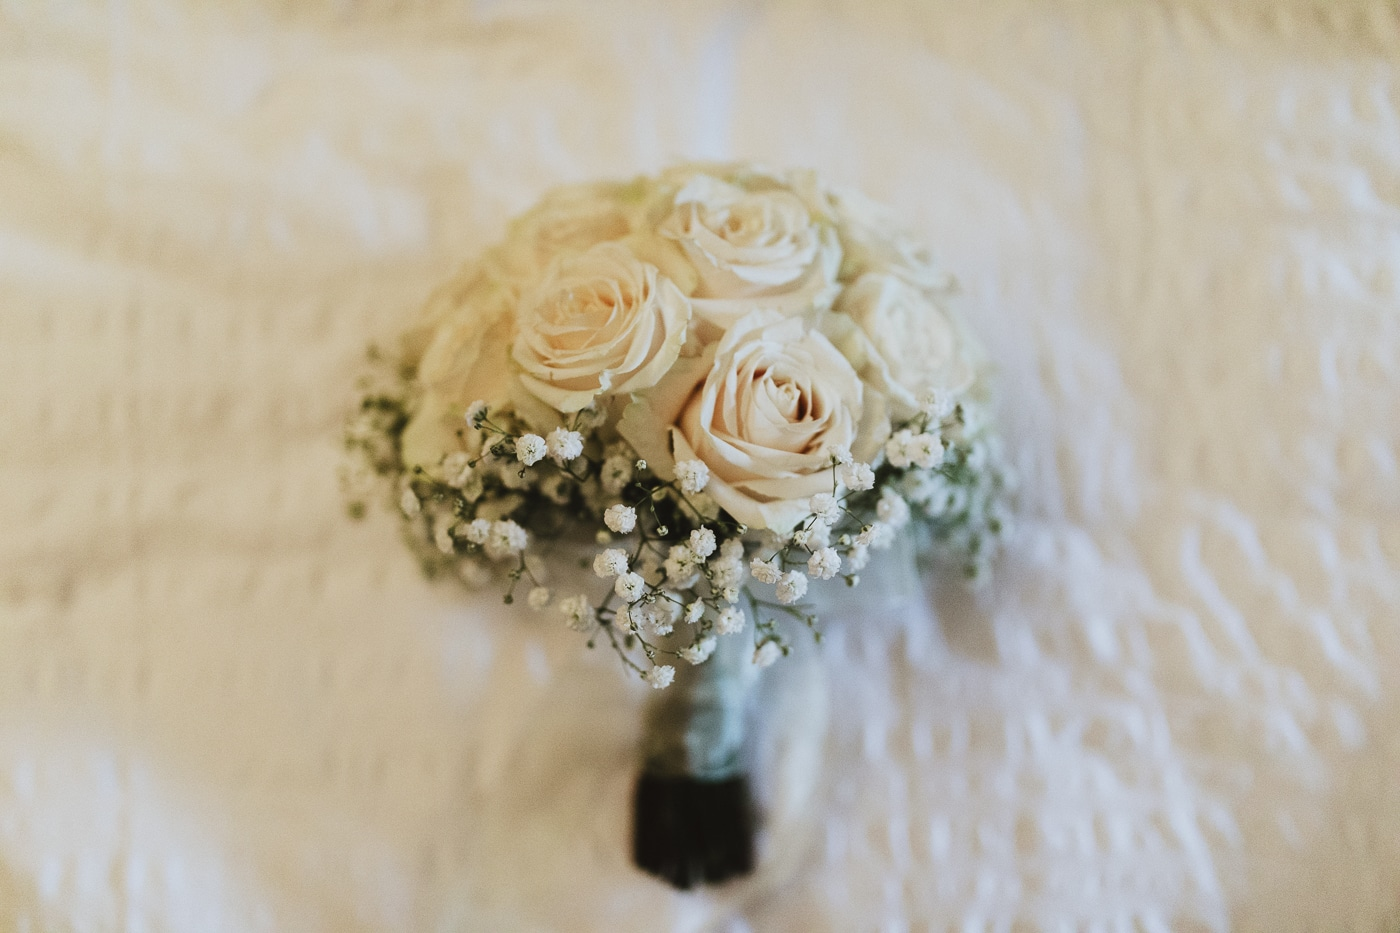 white roses with small white flowers surrounding in bouquet